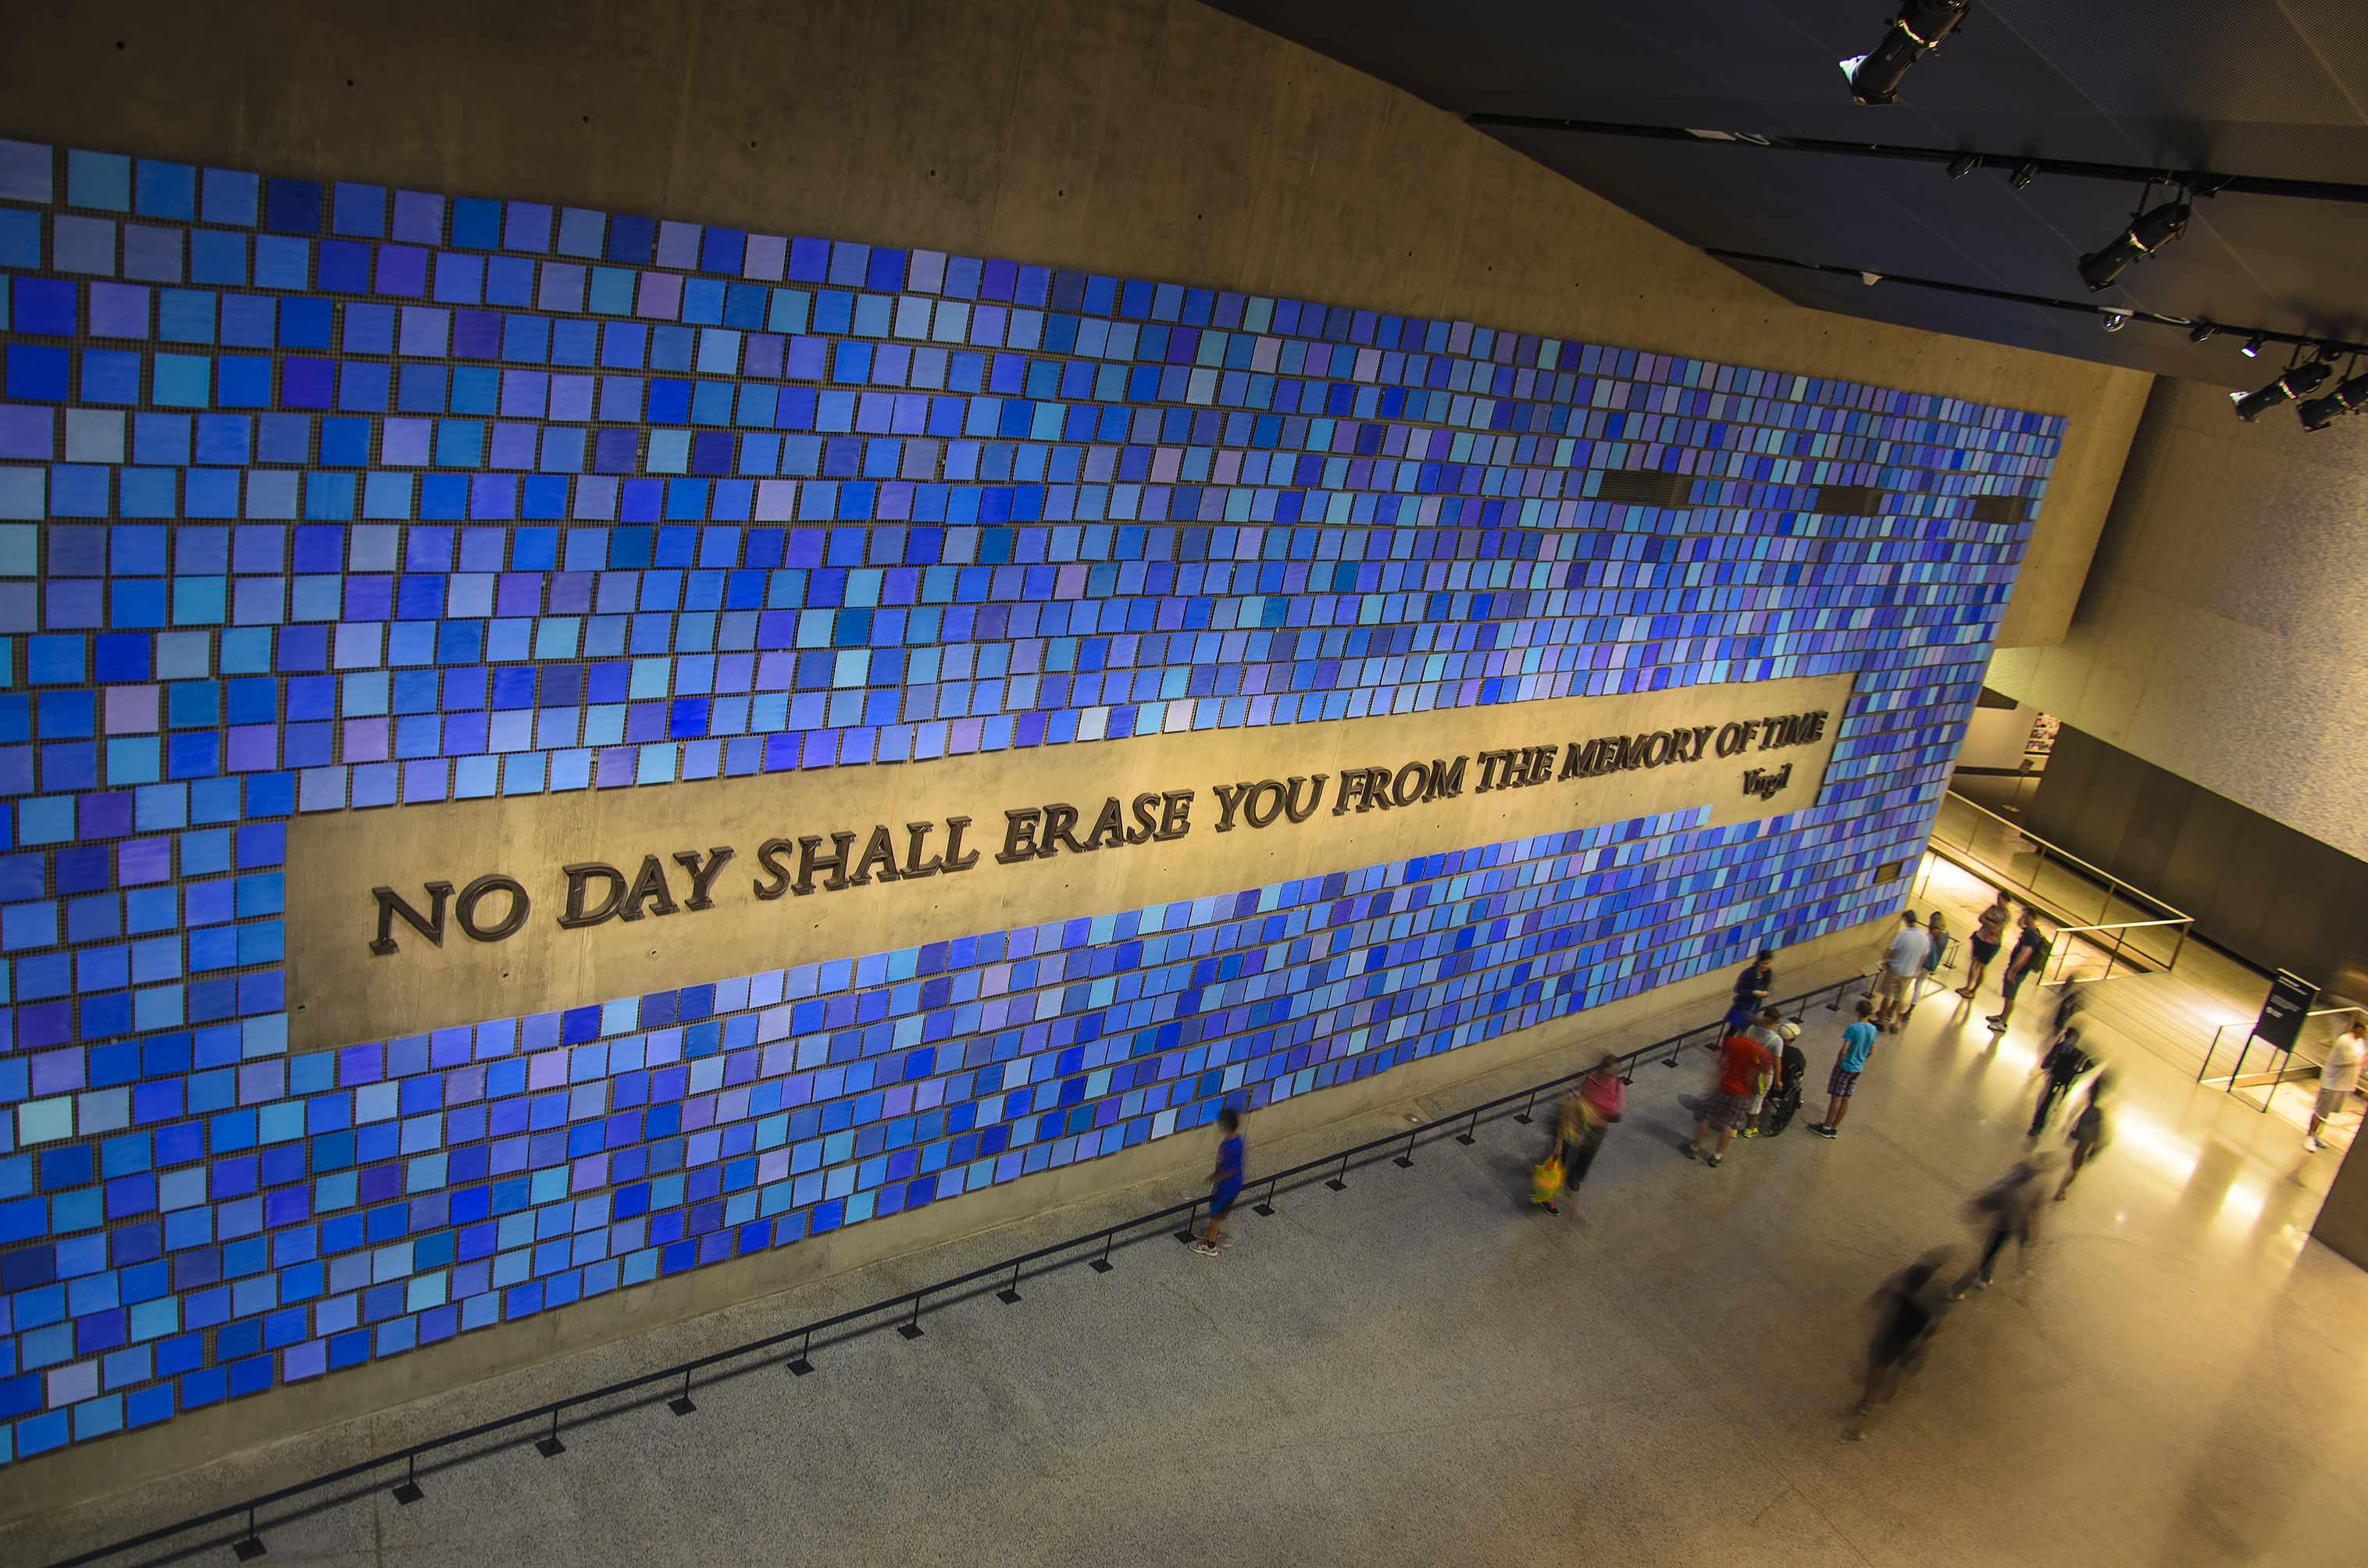 JULY 2016: Interior of the 9/11 Memorial Museum in New York City